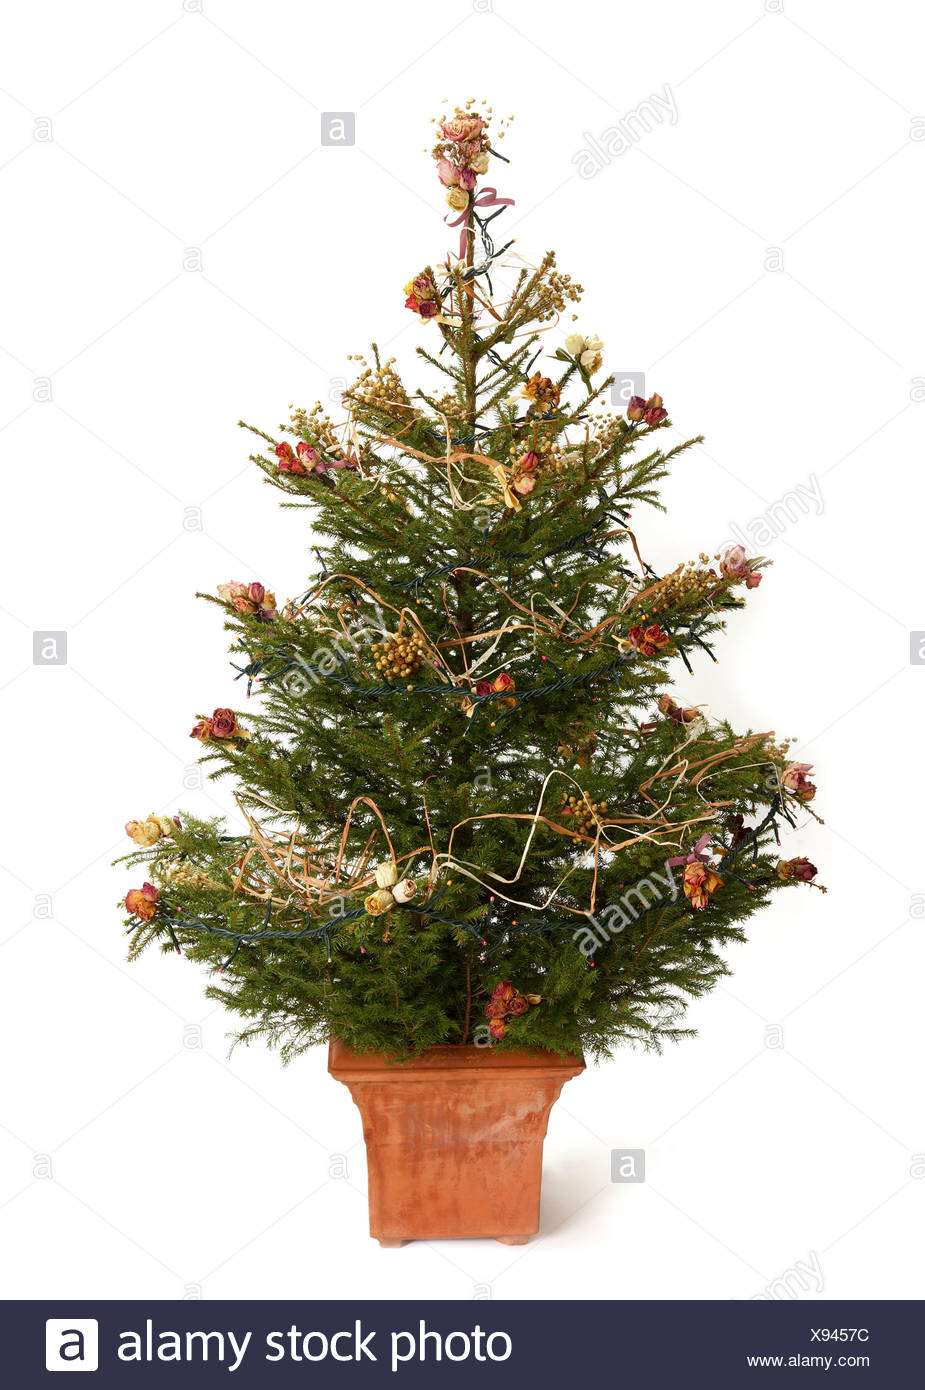 close up of an adorned small christmas tree against white background